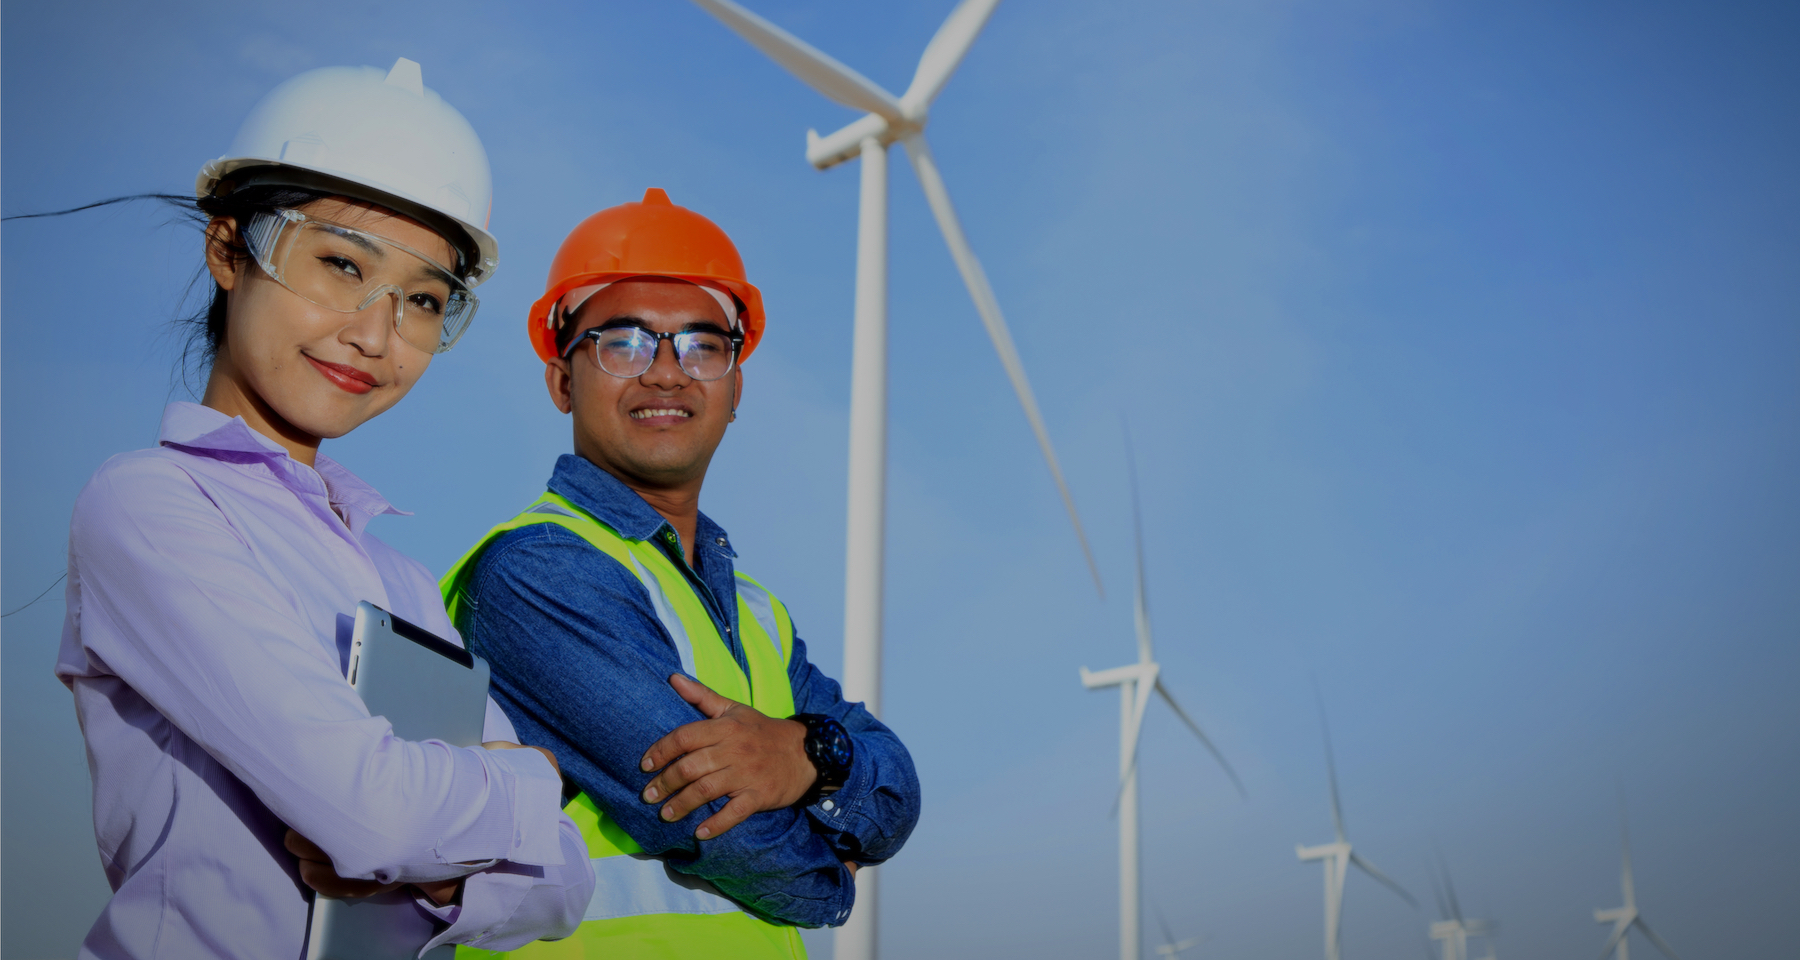 We Provide Sustainable Engineering Solutions